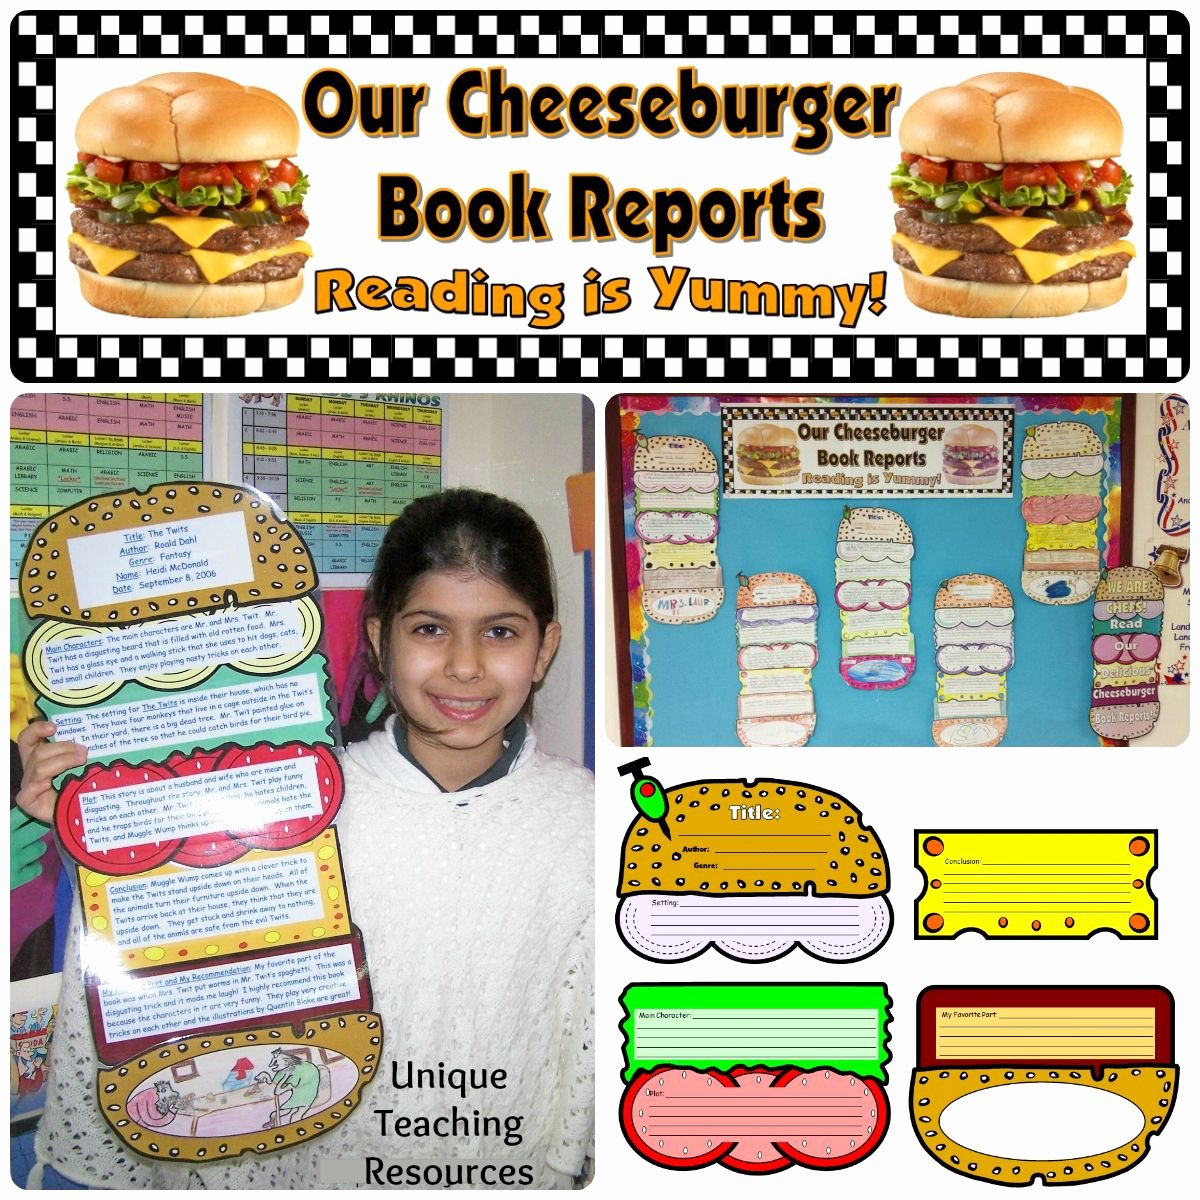 Sandwich Book Report Template Elegant Cheeseburger Book Report Project Templates Printable